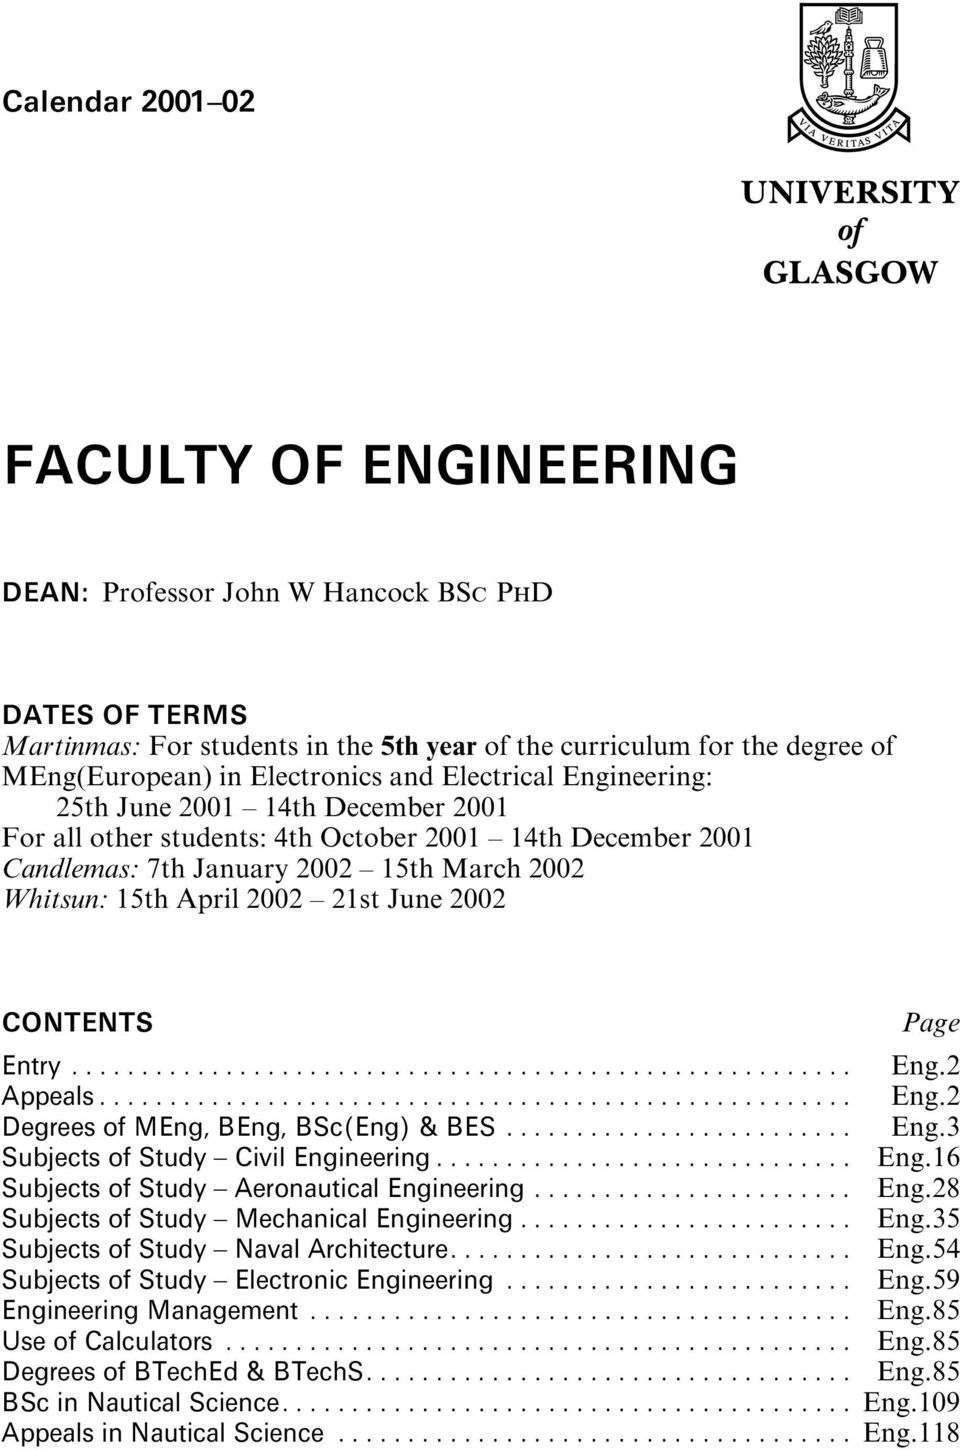 21st June 2002 CONTENTS Page Entry... Eng.2 Appeals... Eng.2 DegreesofMEng,BEng,BSc(Eng)&BES... Eng.3 SubjectsofStudy^CivilEngineering... Eng.16 SubjectsofStudy^AeronauticalEngineering... Eng.28 SubjectsofStudy^MechanicalEngineering.